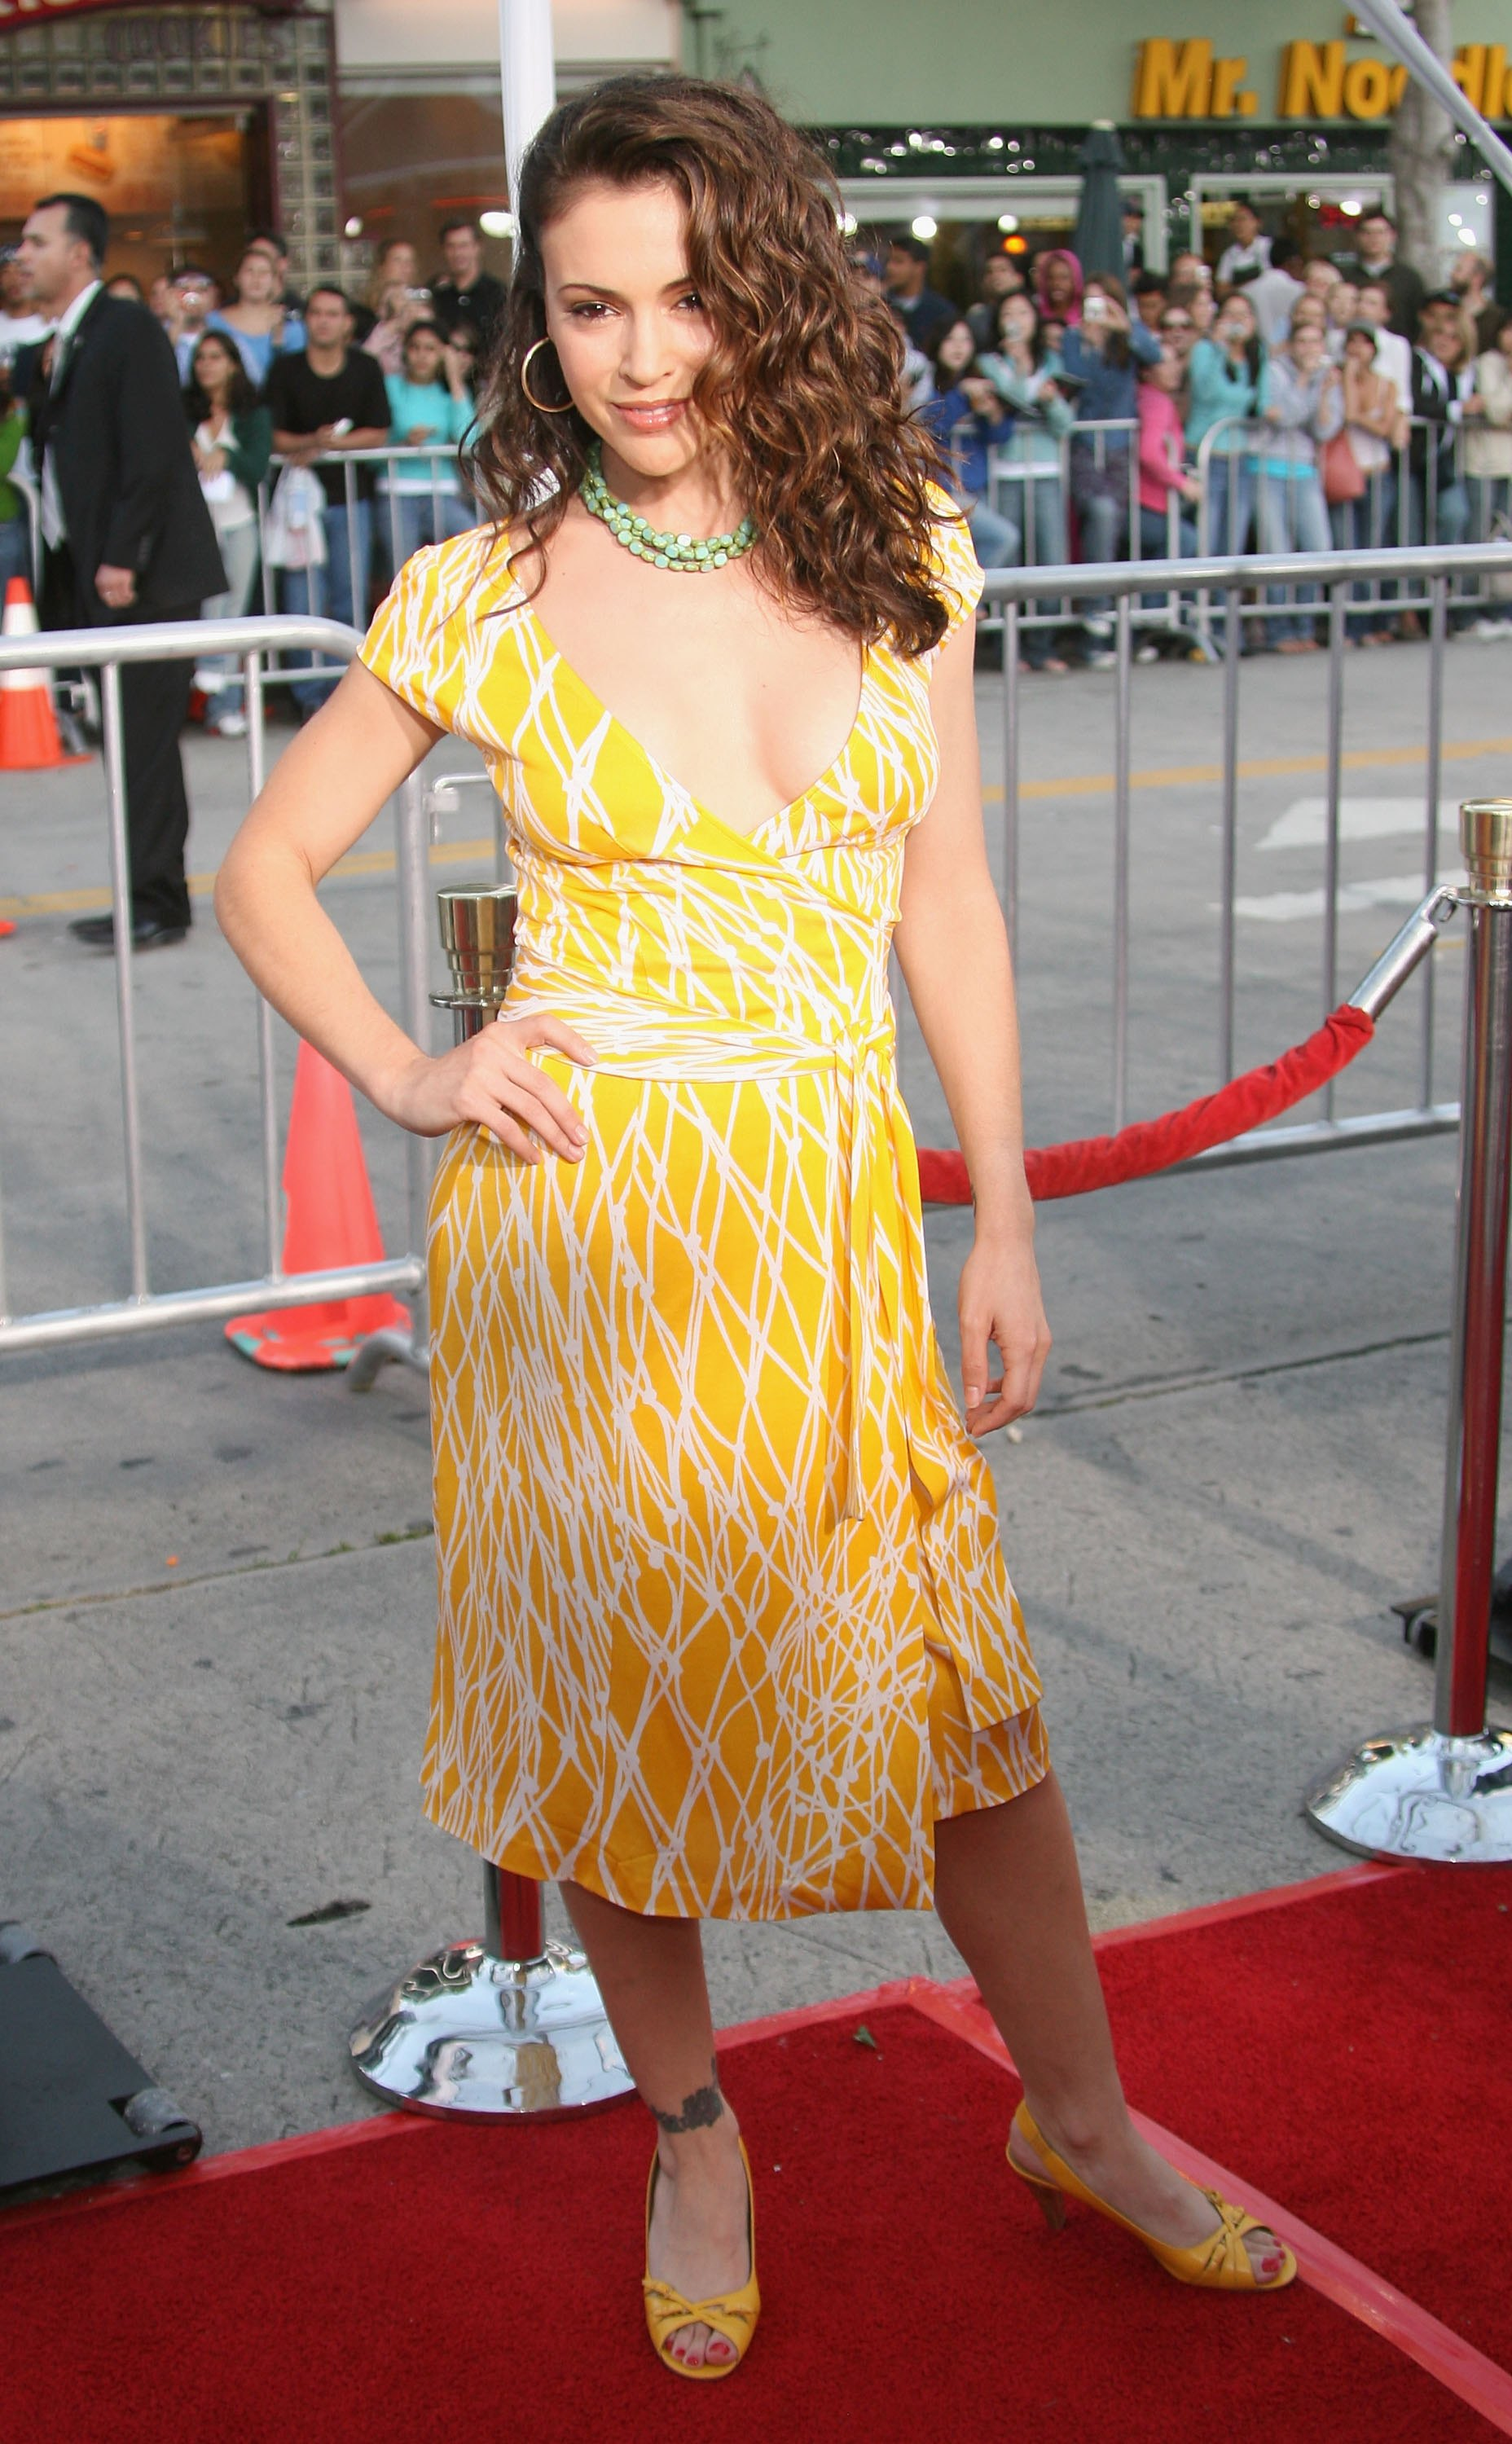 Alyssa Milano : 000006636md8 - picture uploaded by jheart